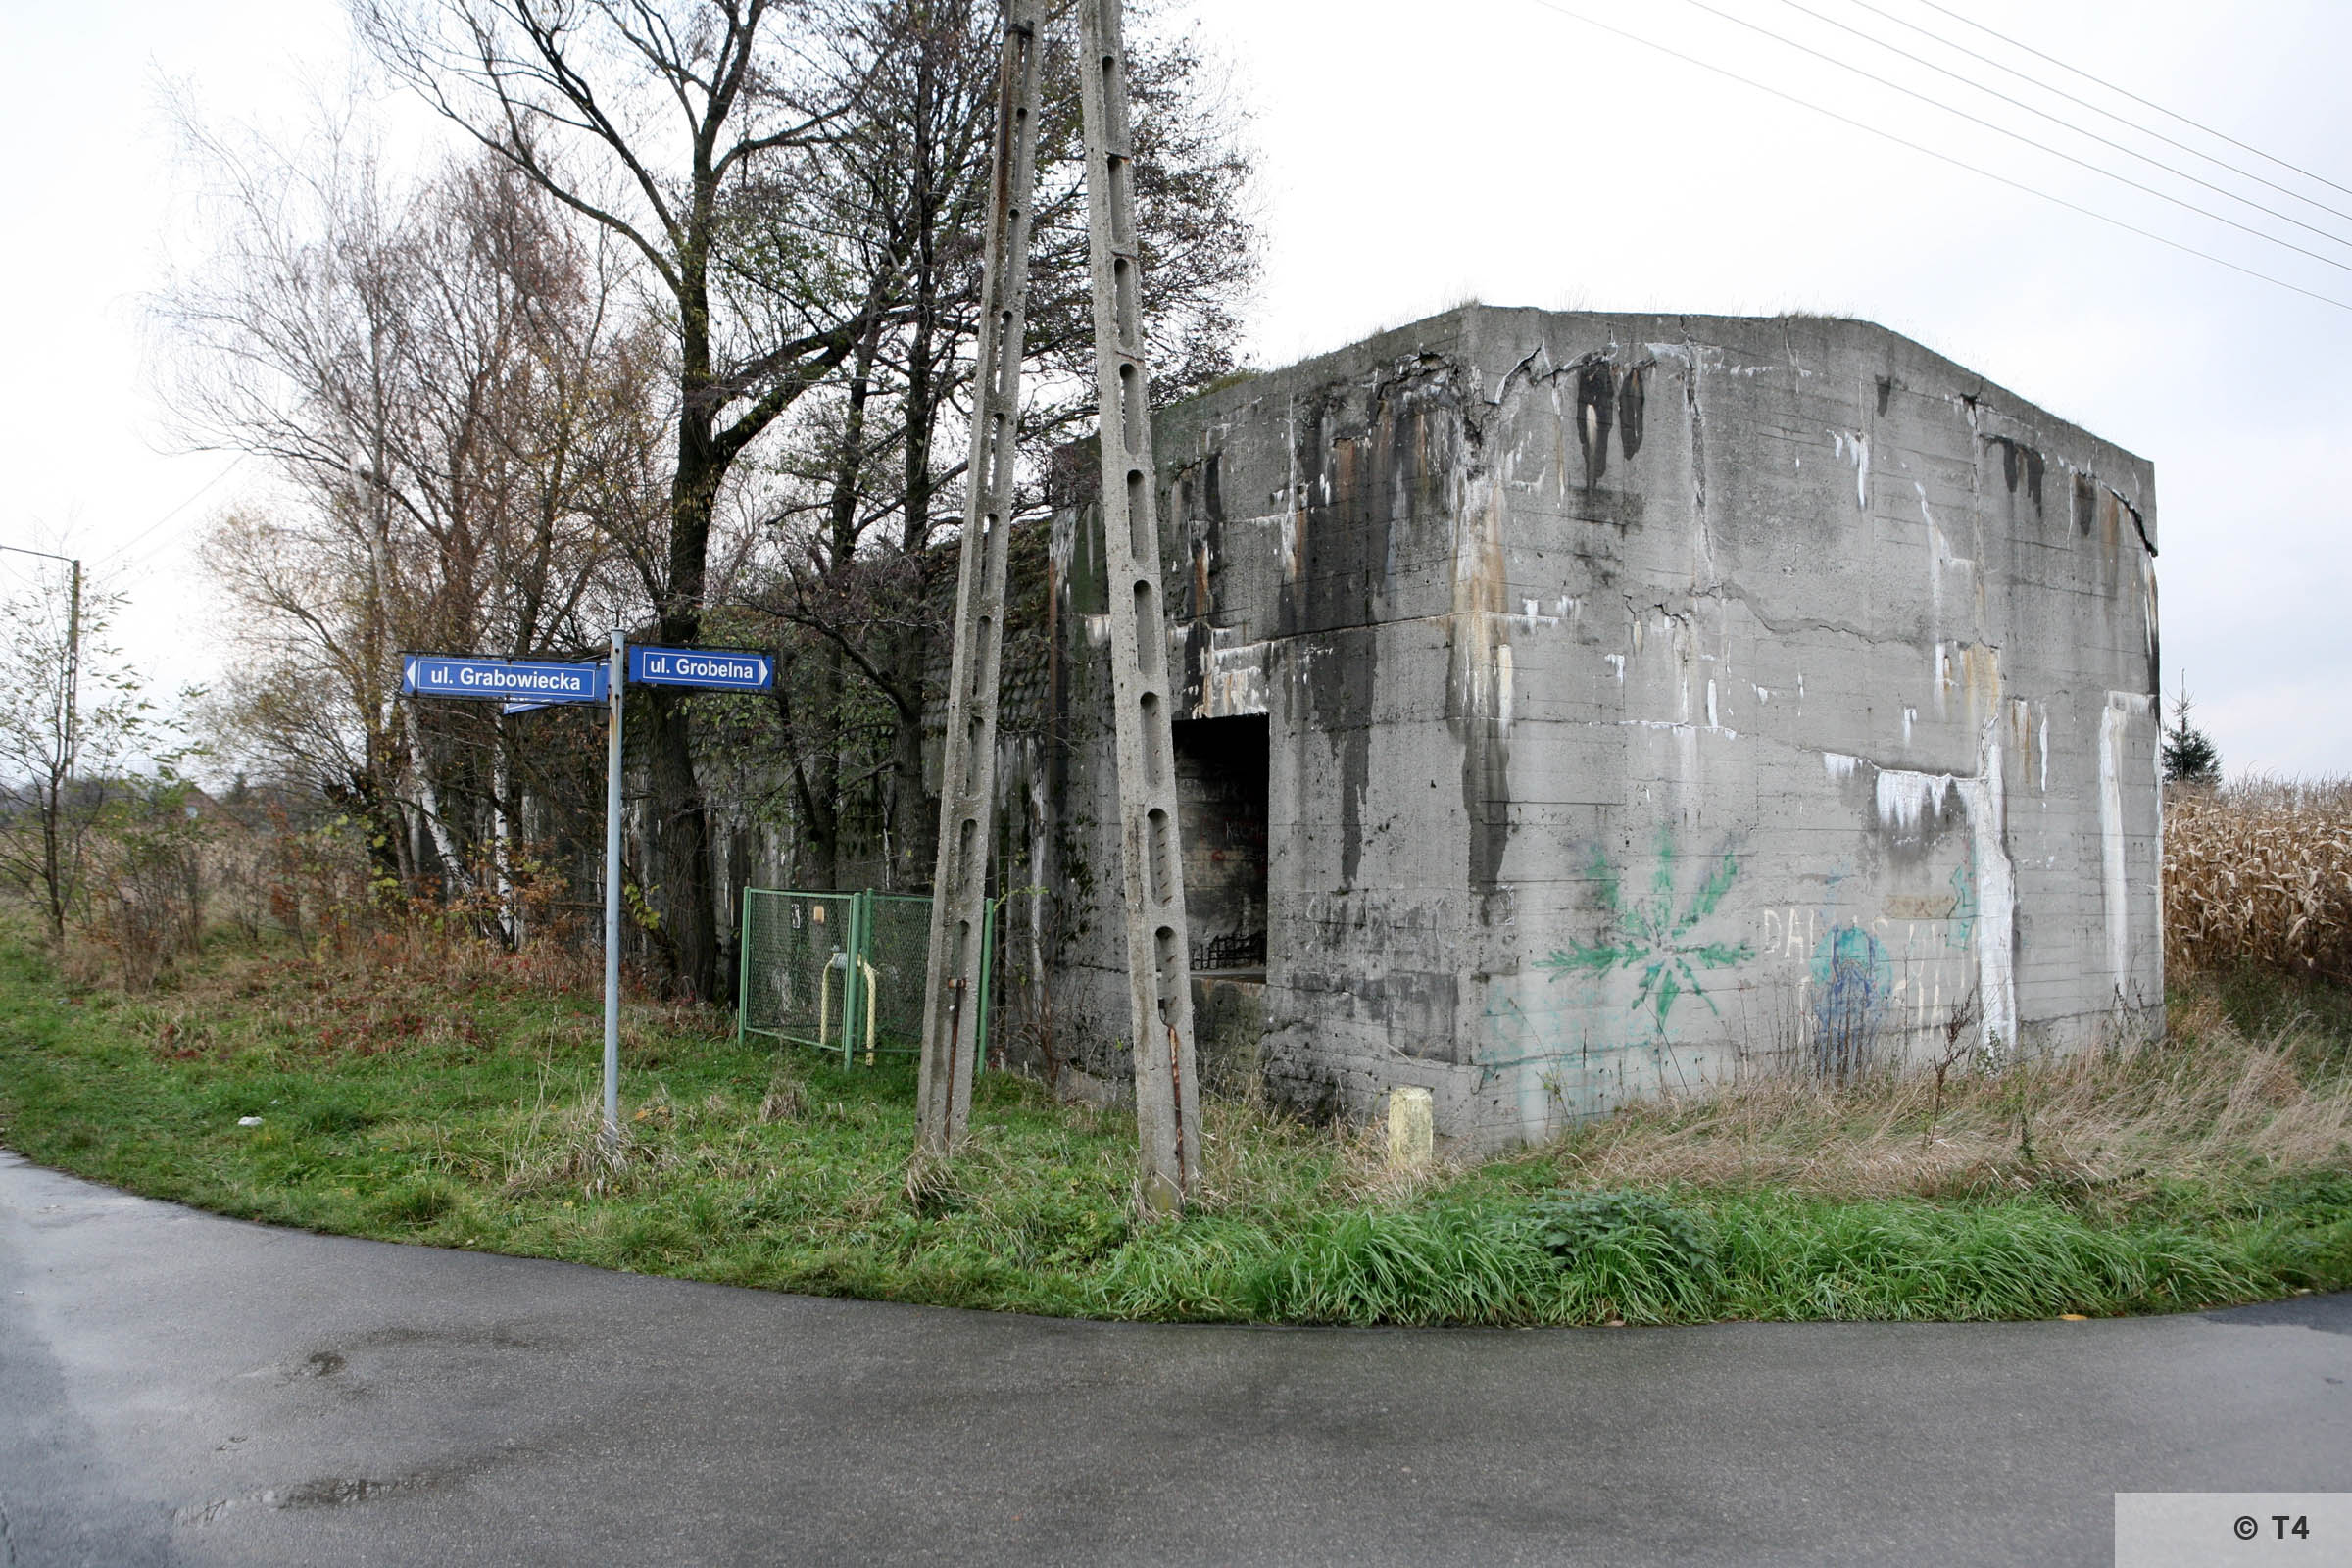 Air raid shelter at the intersection of ul Iglasta and ul Grobelna. 2008 T4 3204